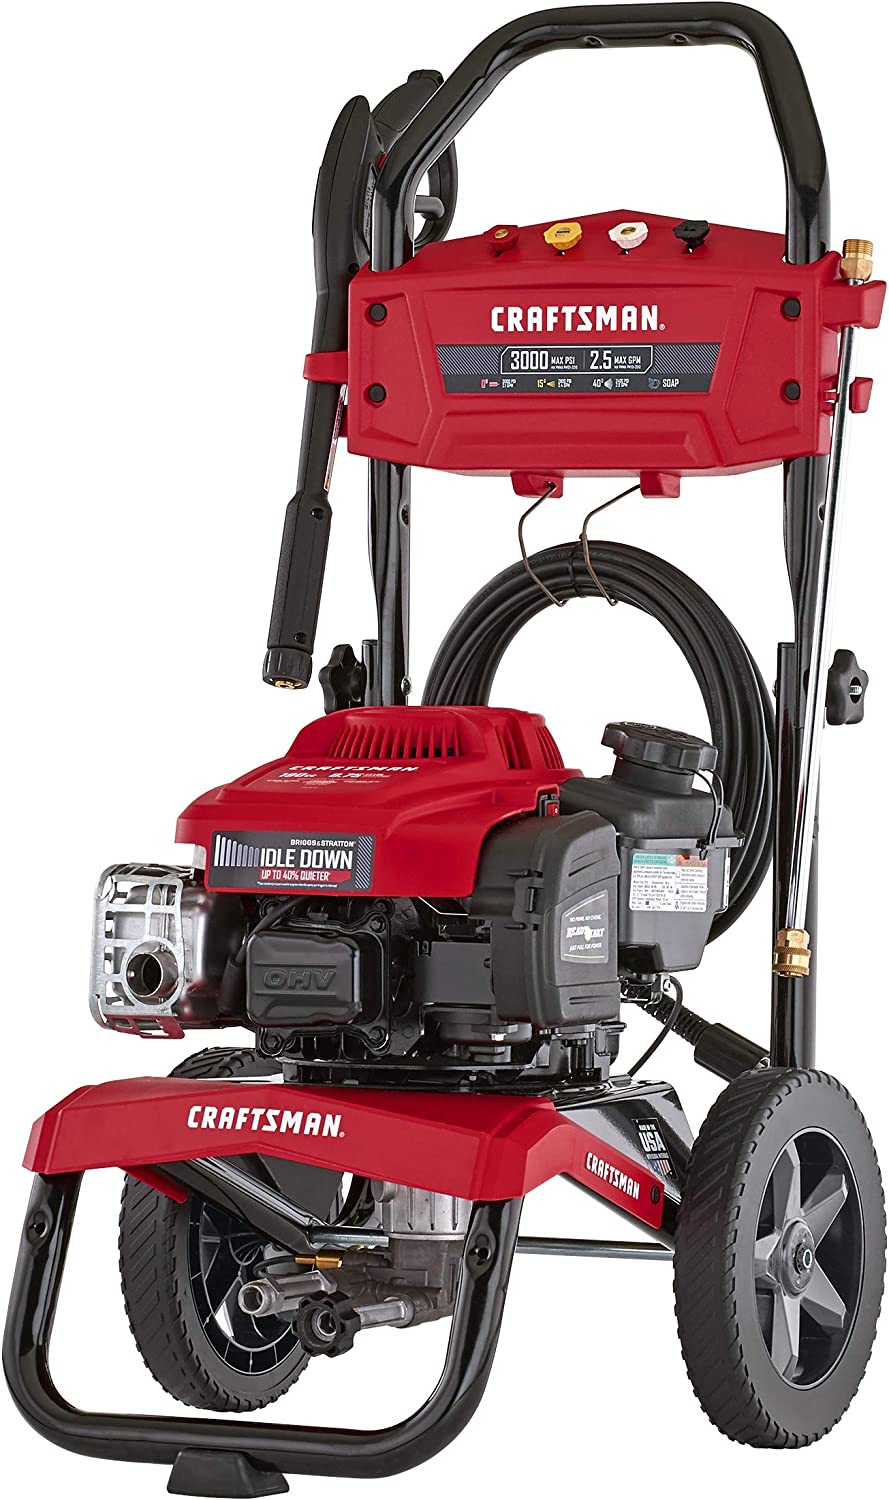 CRAFTSMAN 2800 MAX PSI PRESSURE WASHER